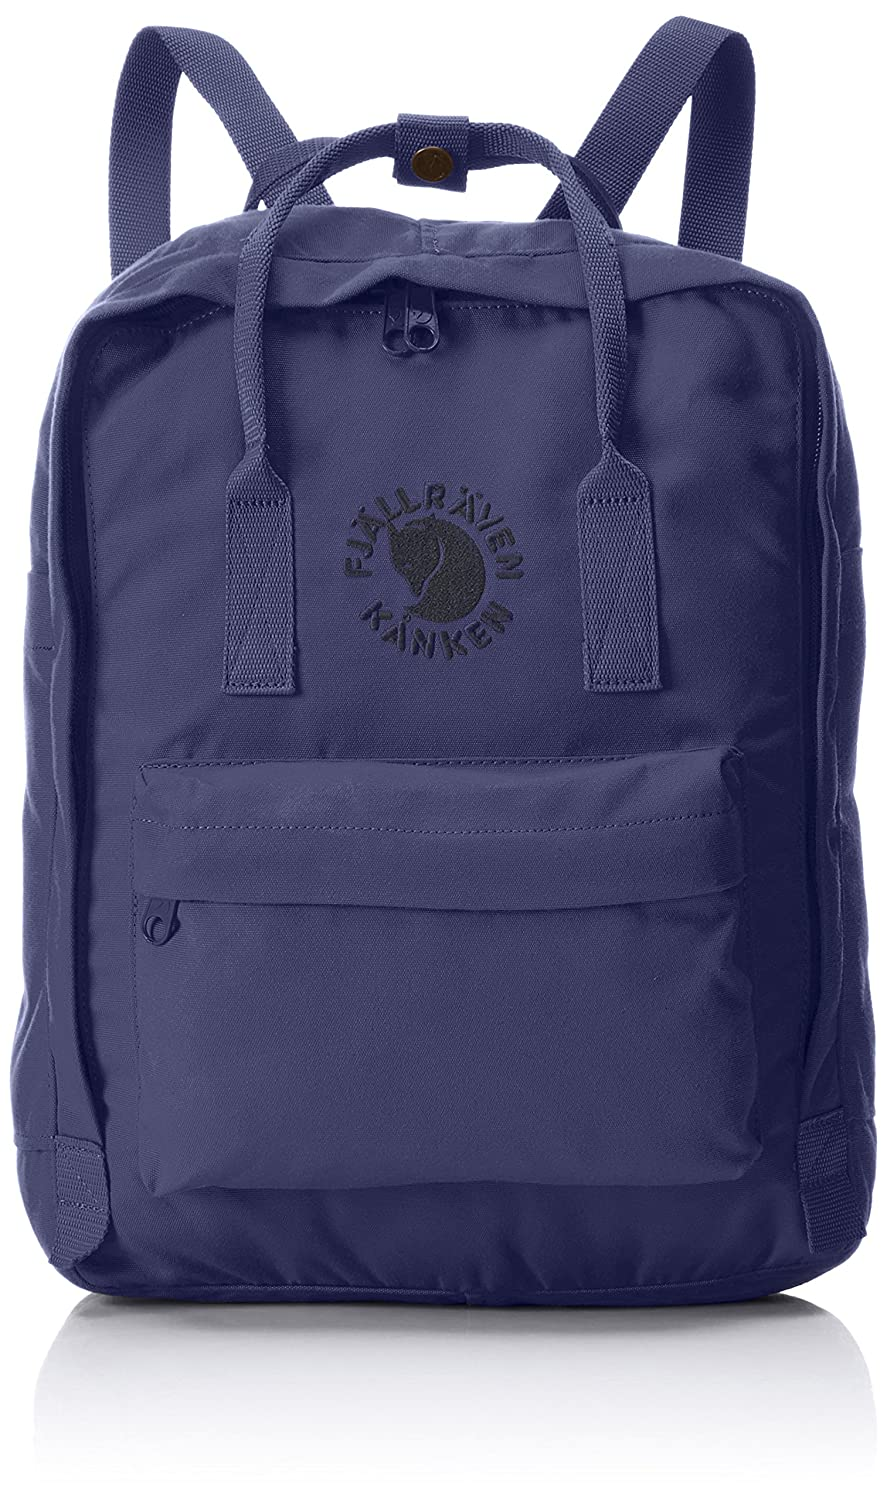 (フェールラーベン) FJALL RAVEN Re-Kanken Midnight Blue 558 B01E4E80FO